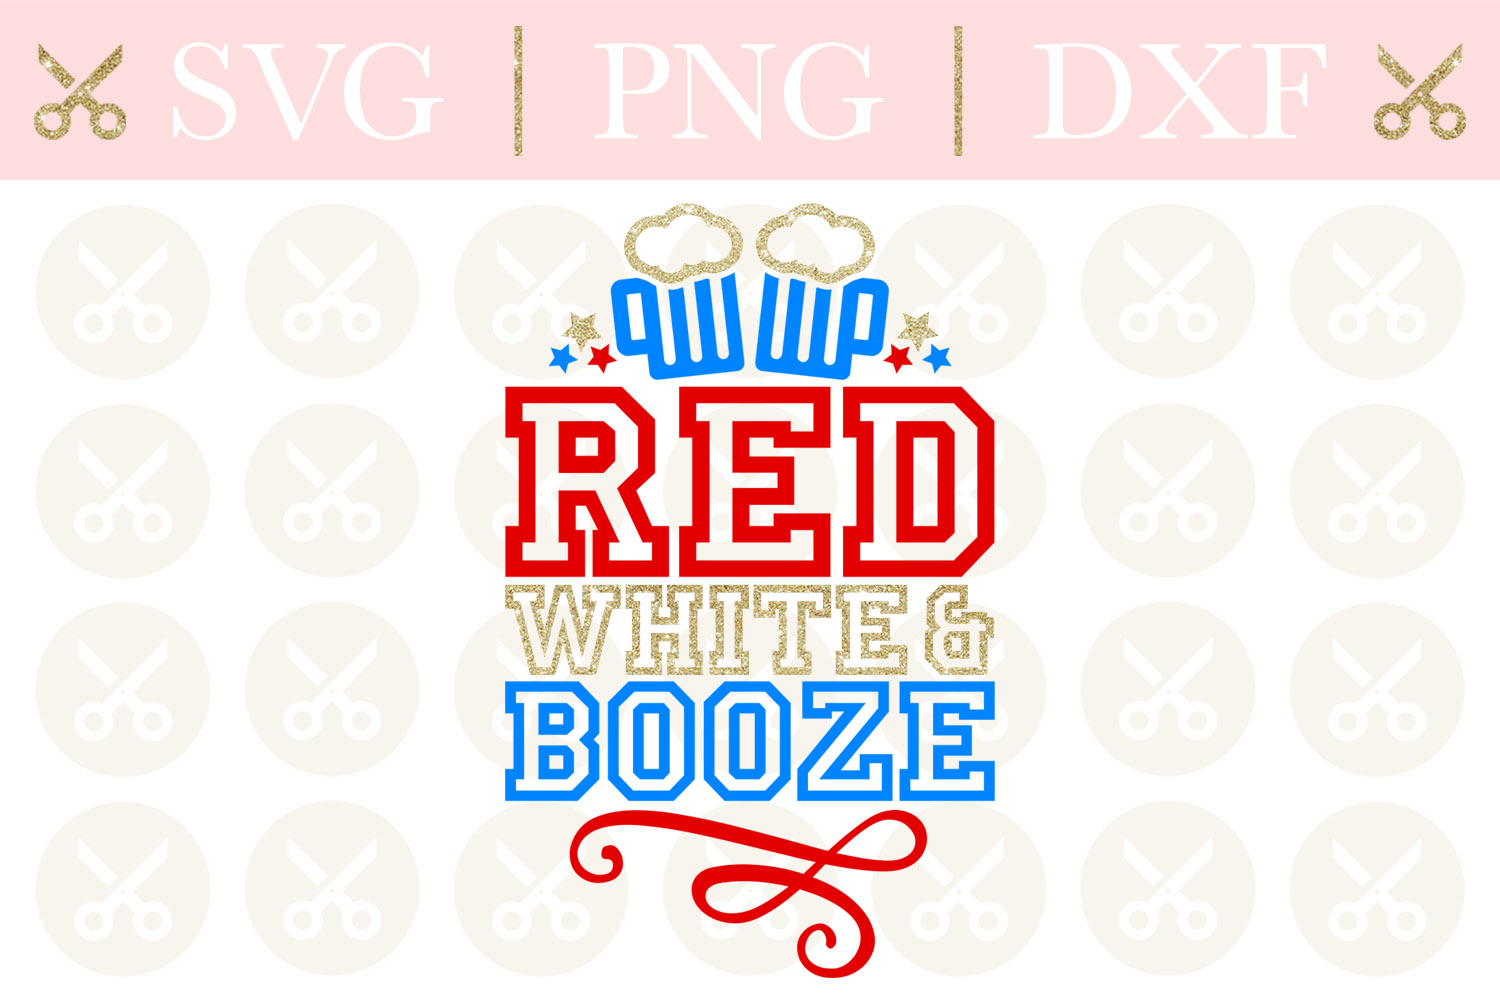 4th Of July Svg Red White And Booze Svg Fourth Of July Svg example image 1